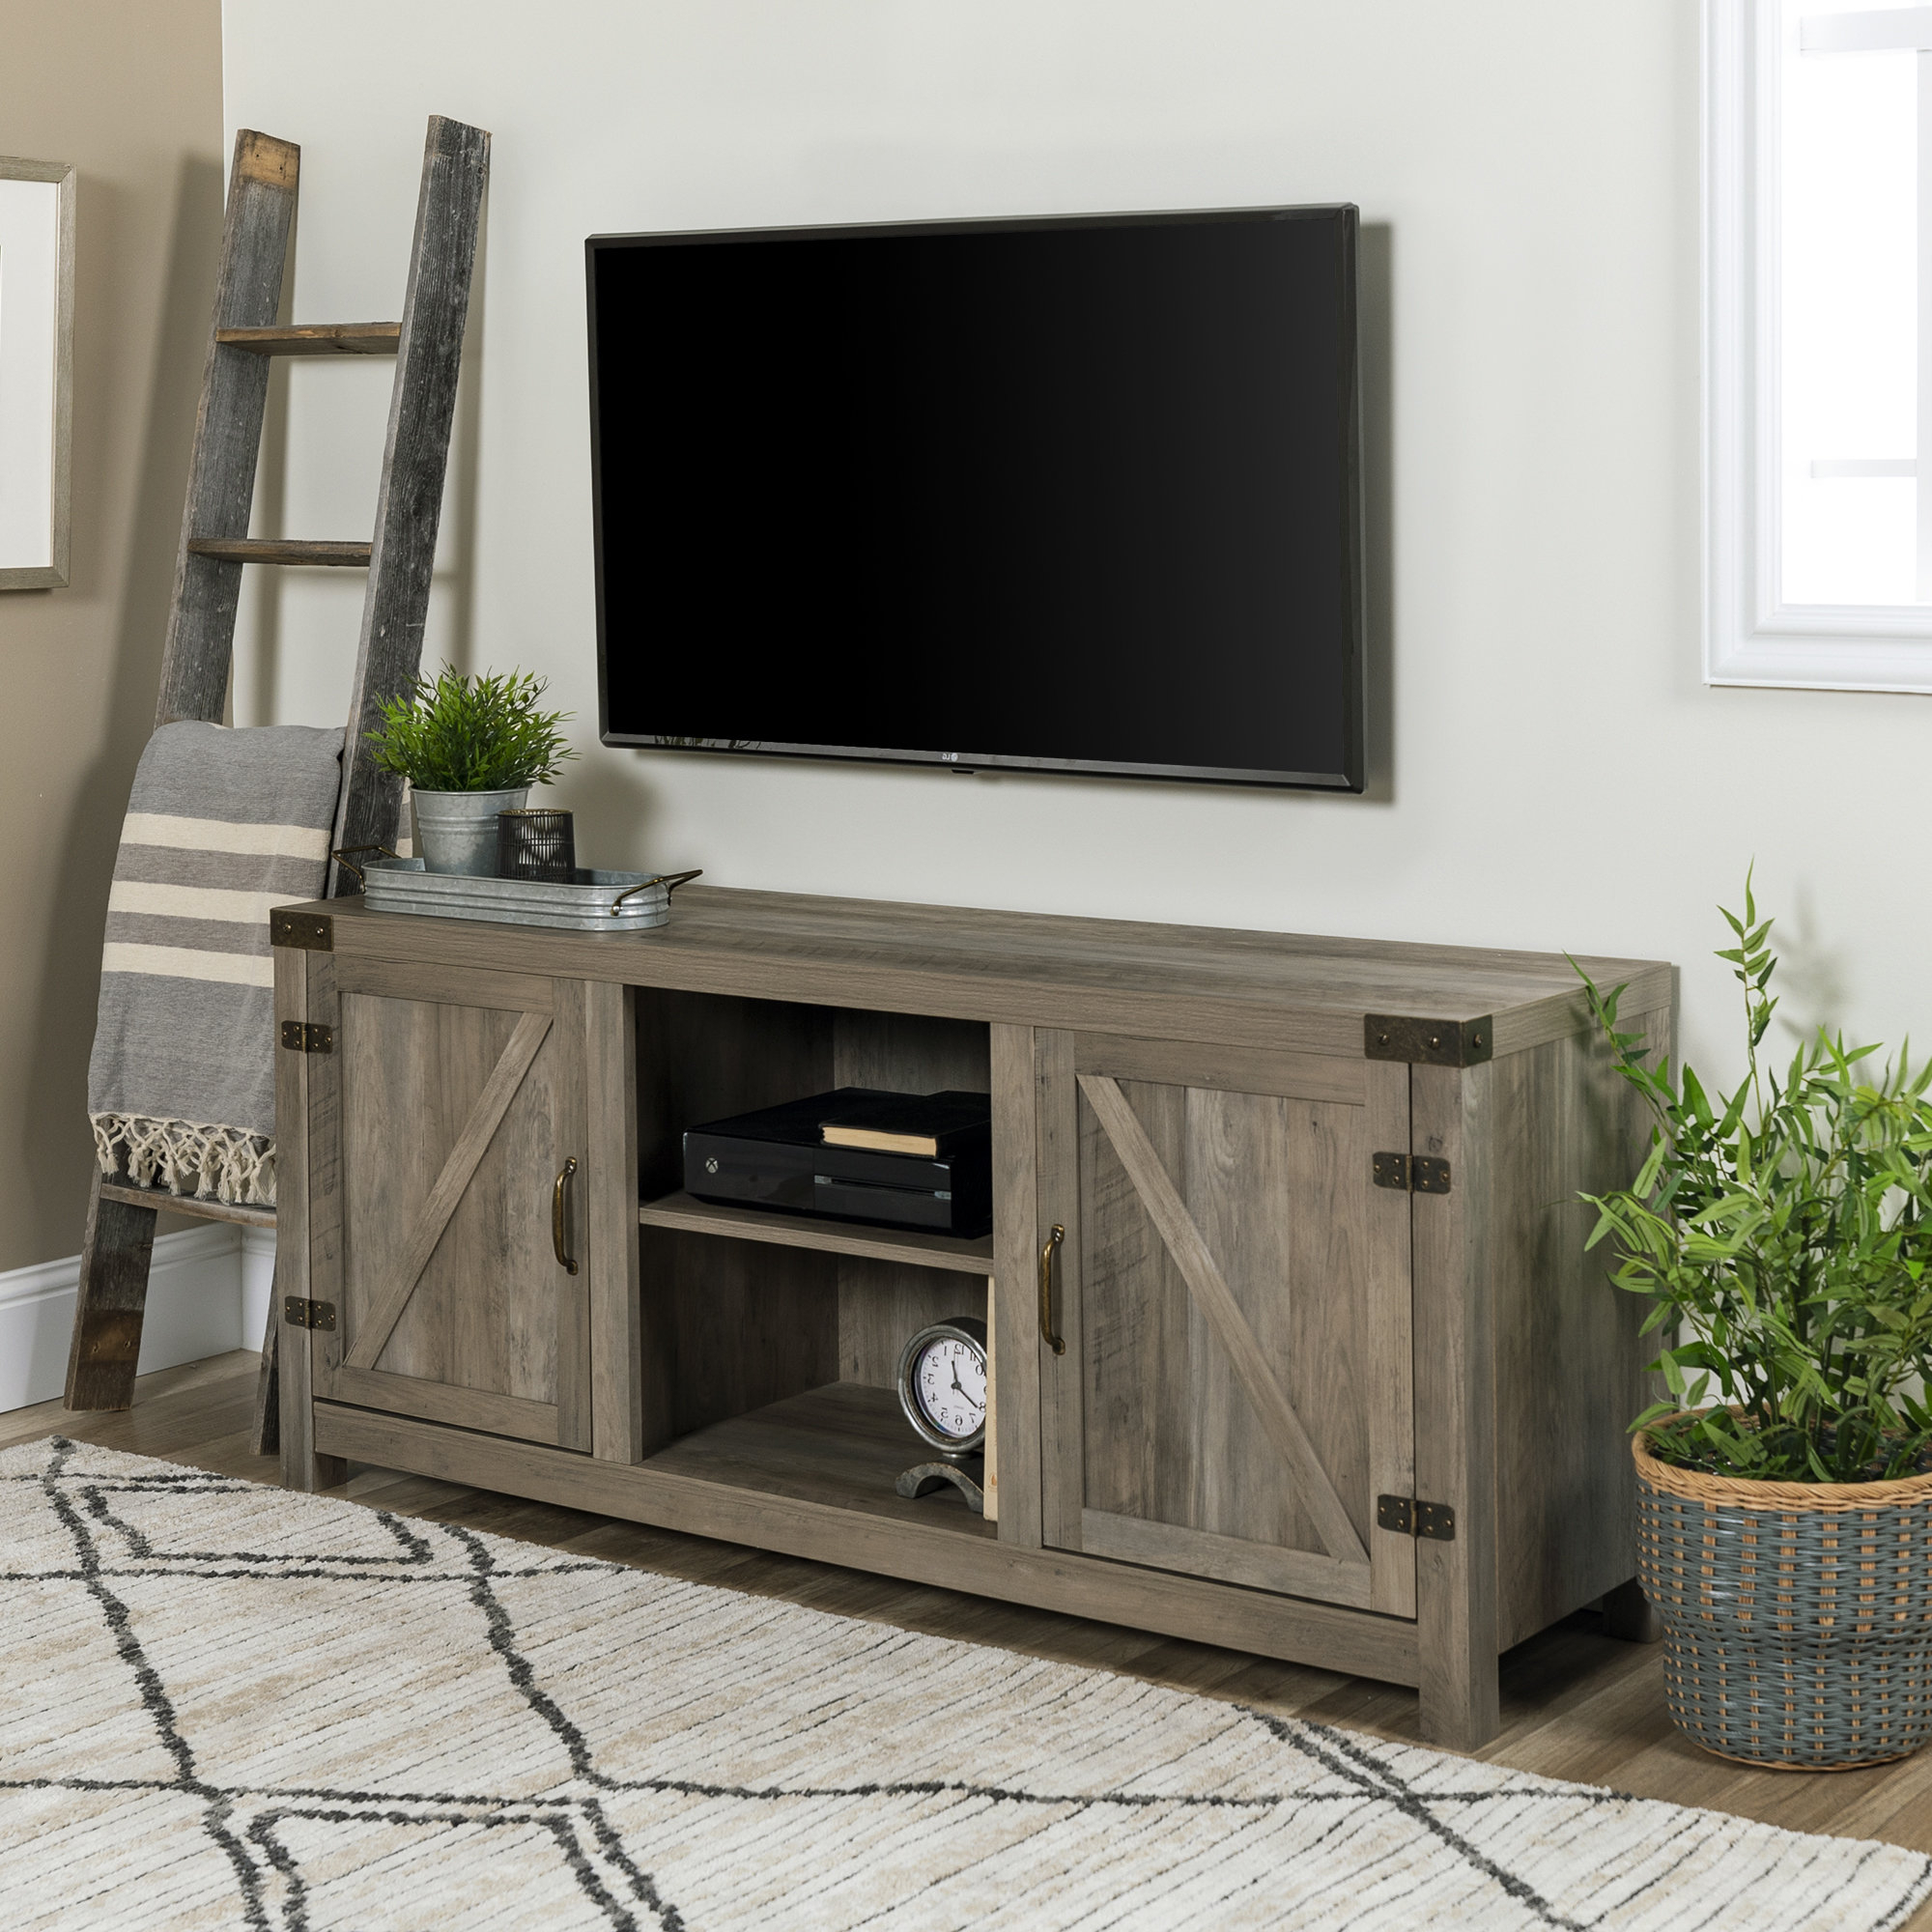 White Tv Stands For Flat Screens Throughout Newest Antique White Tv Stand (View 20 of 20)